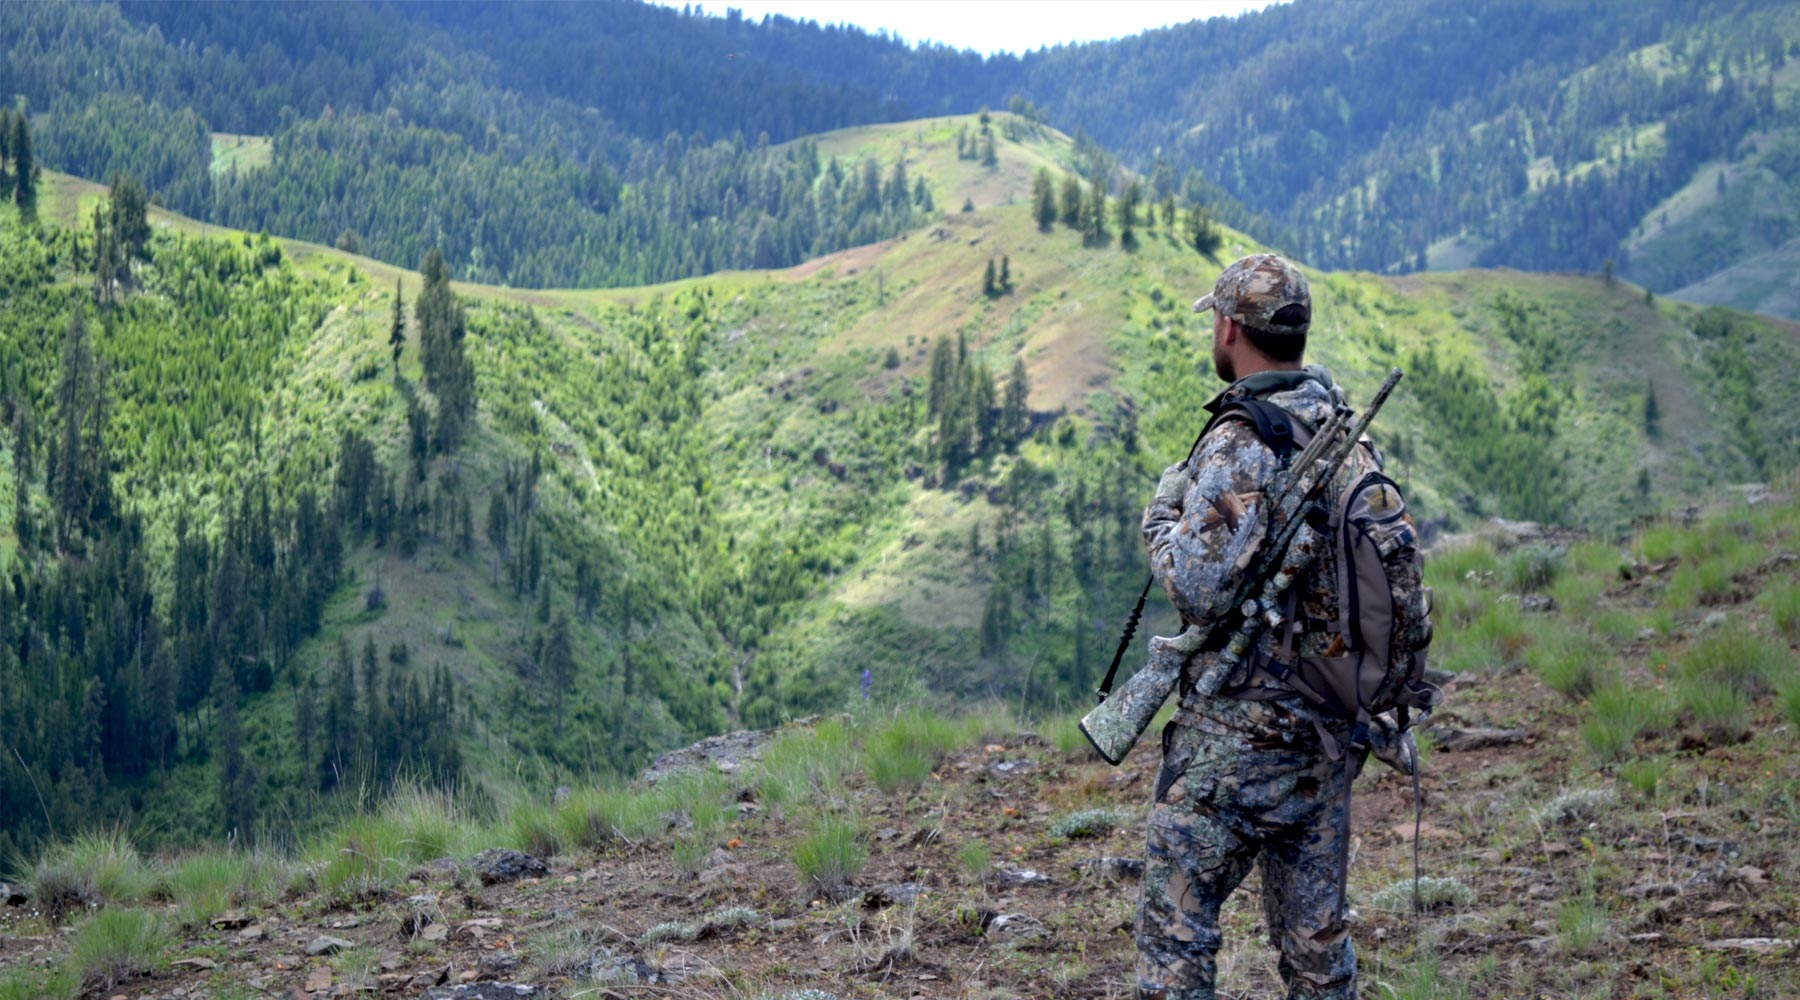 Choose the right location, and right gear to ensure a successful hunting trip